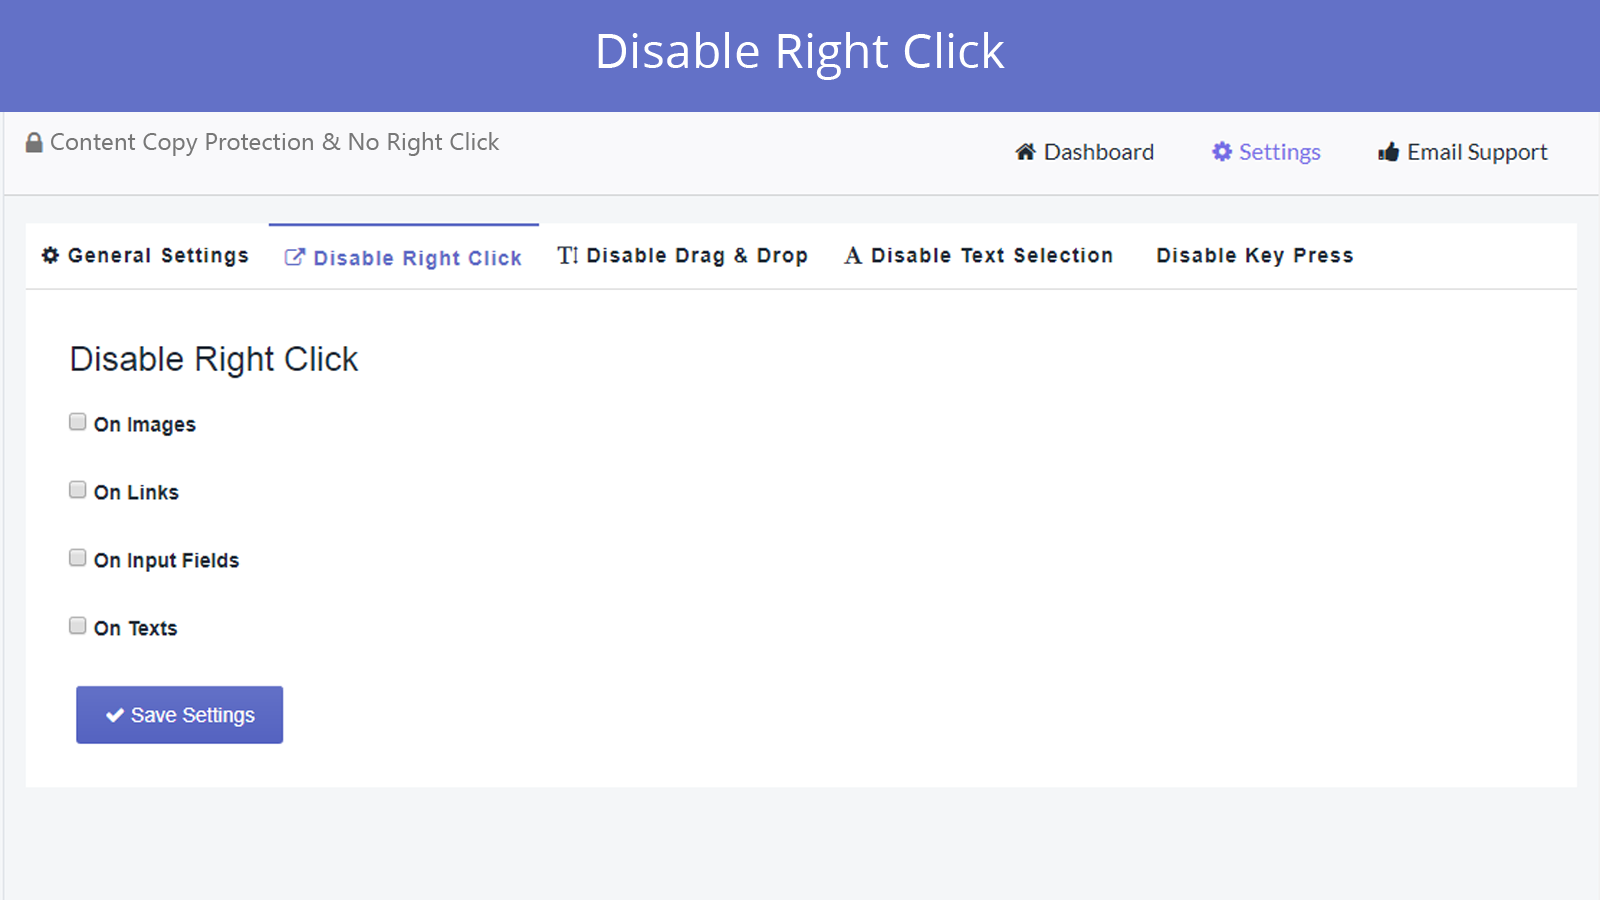 disable right click feature in smart right click disabler app